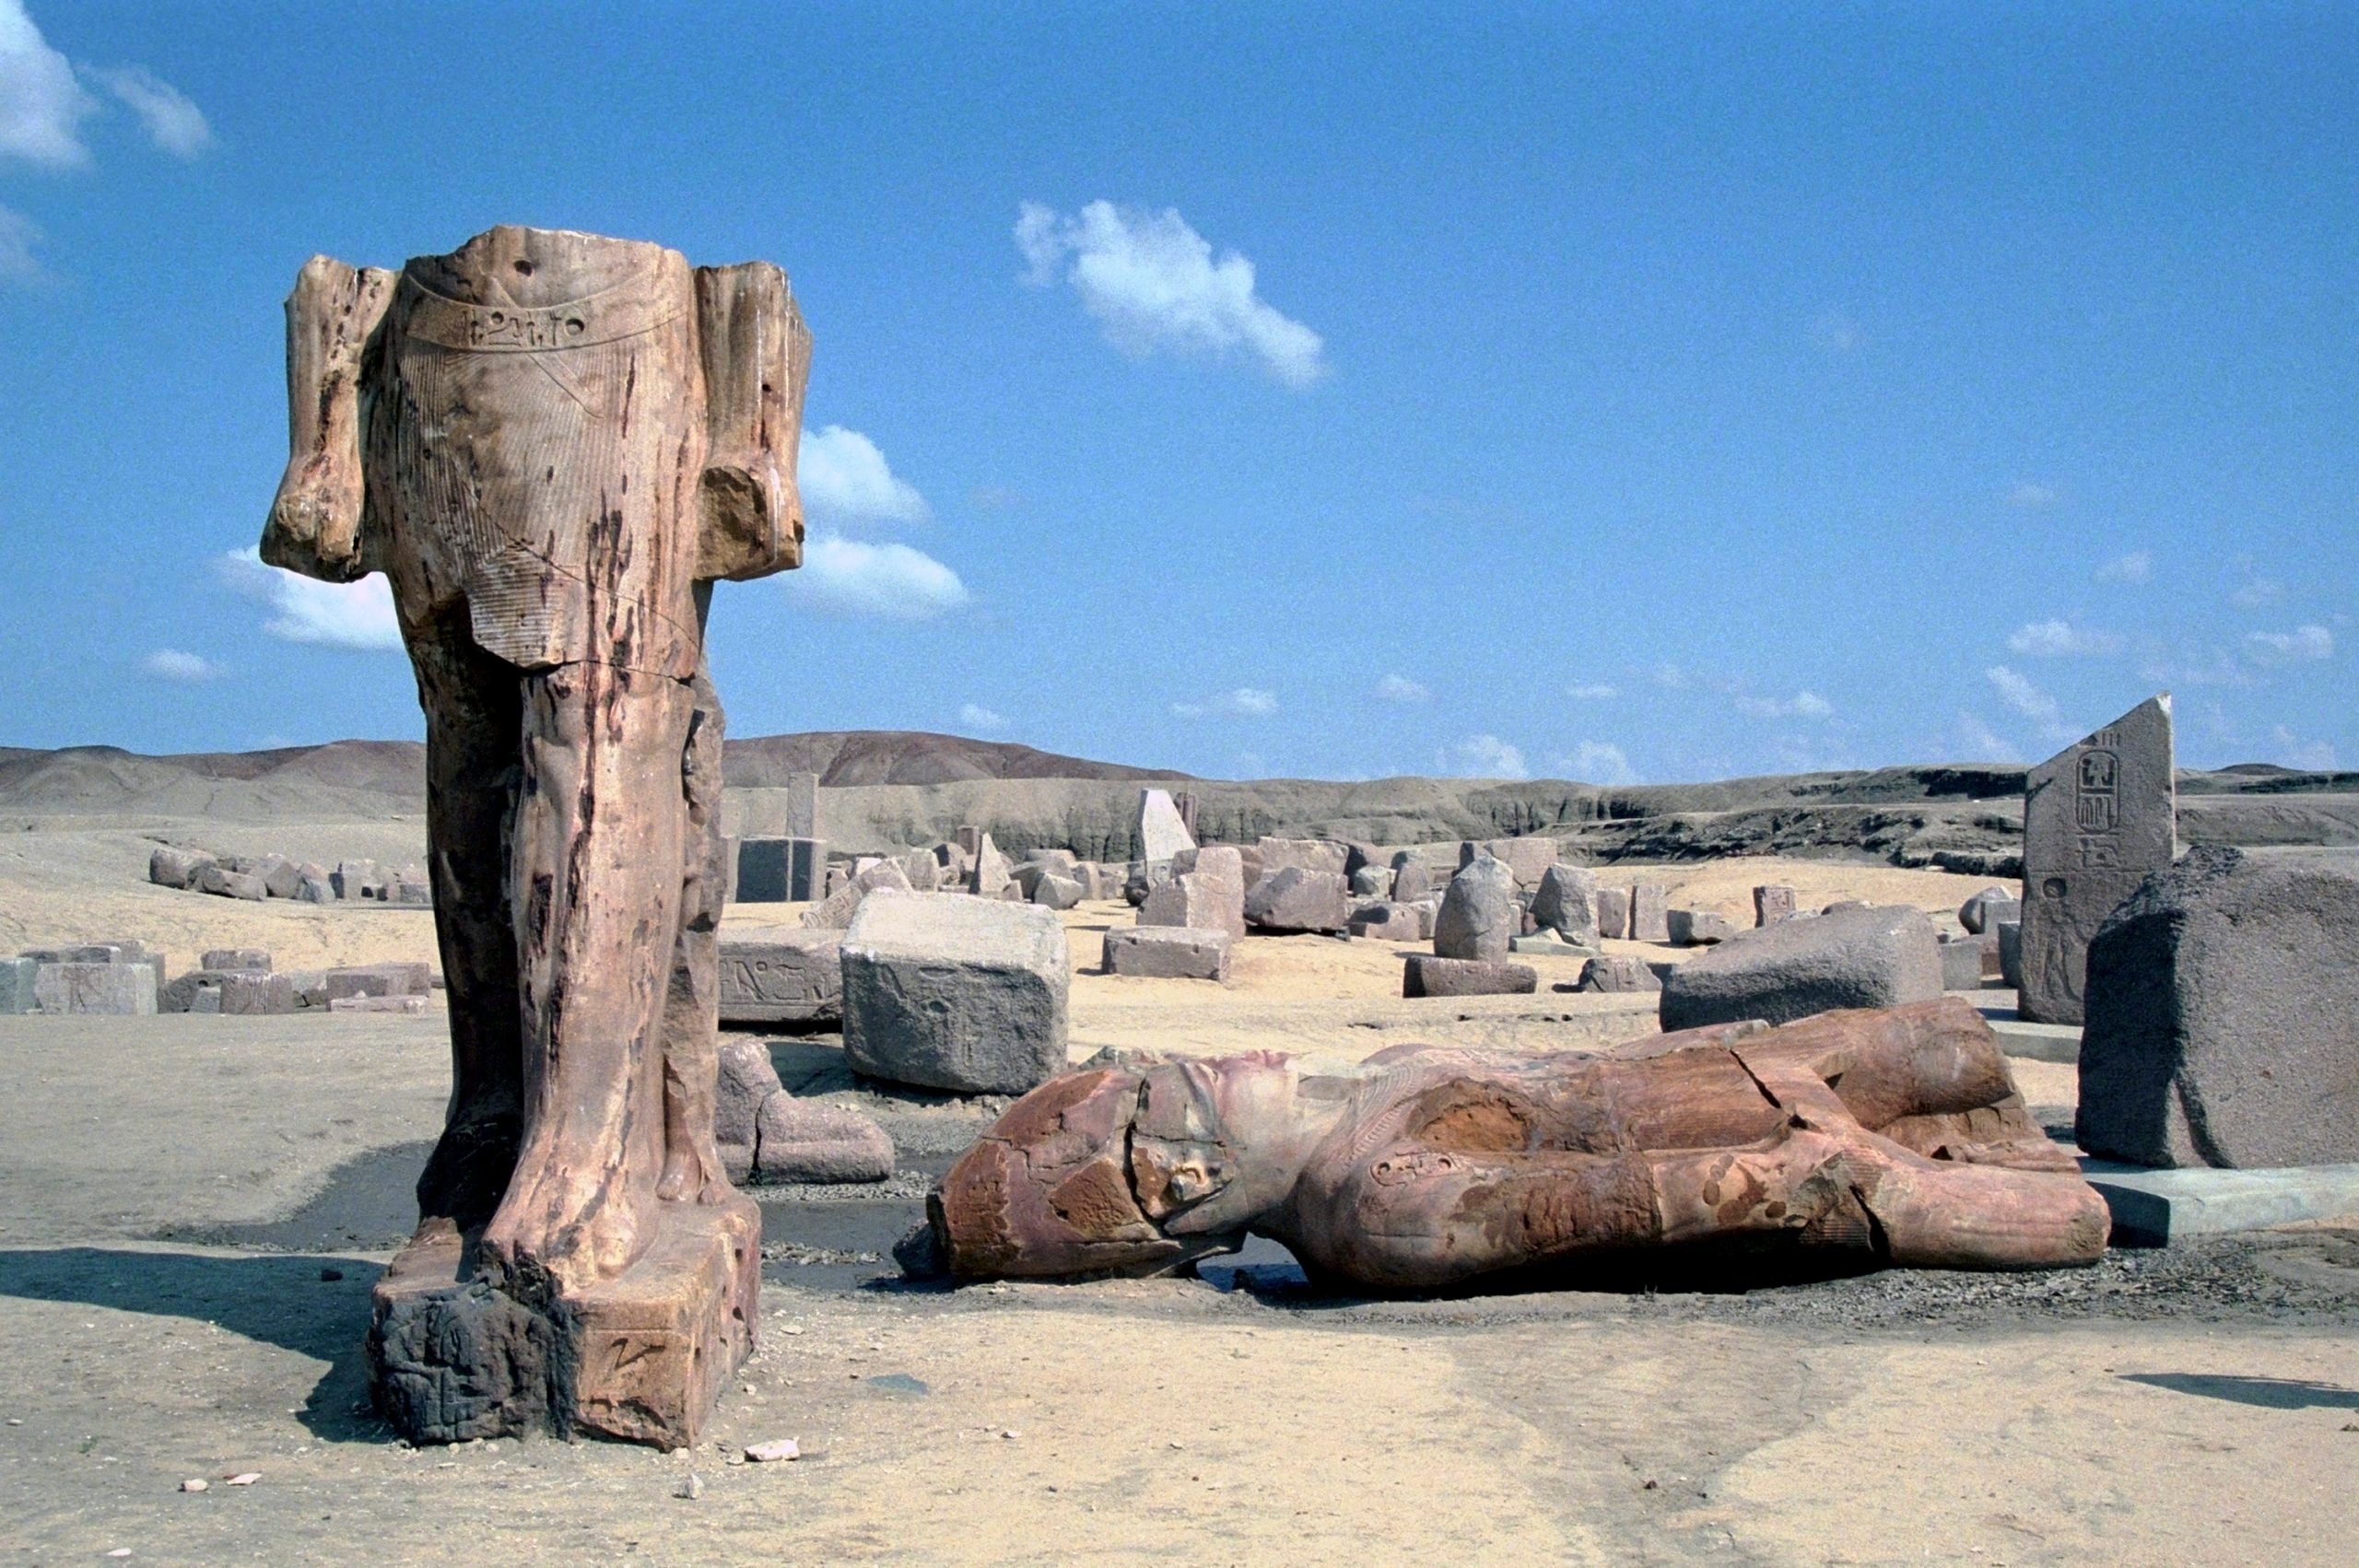 Ruins of the ancient city of Tanis, Egypt.